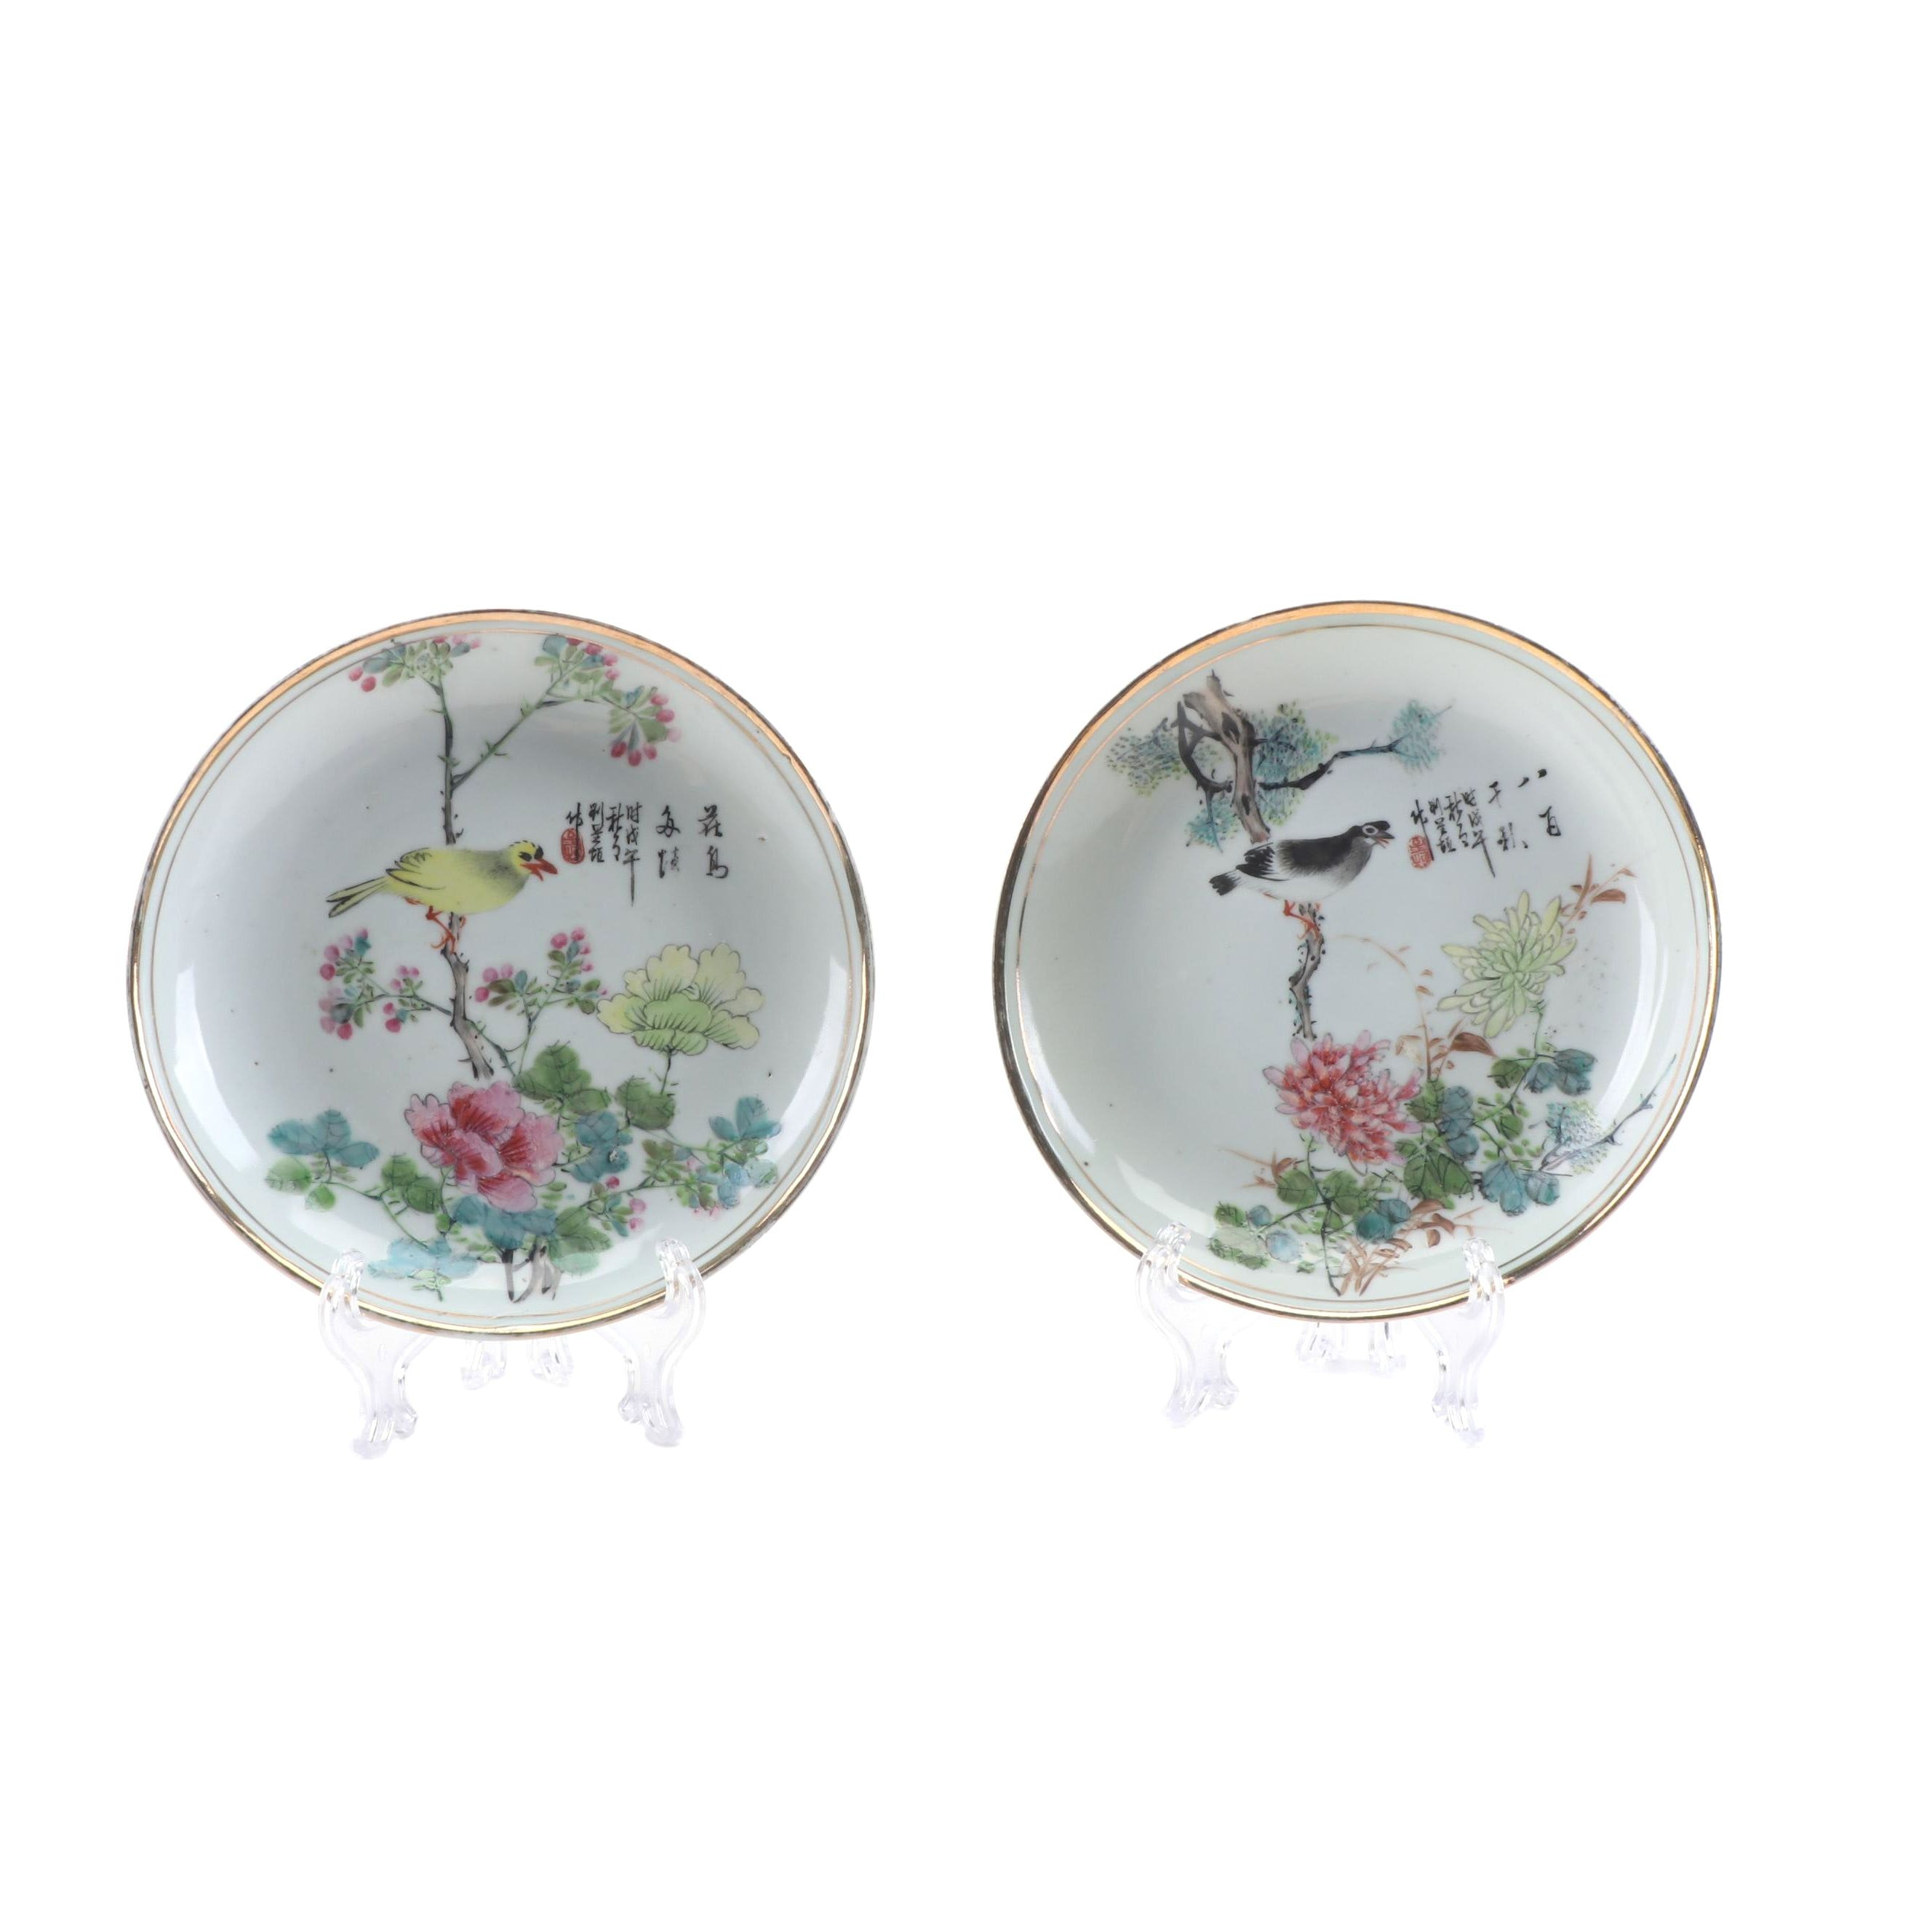 Hand-Painted Chinese Bird Motif Porcelain Plates with Poetry